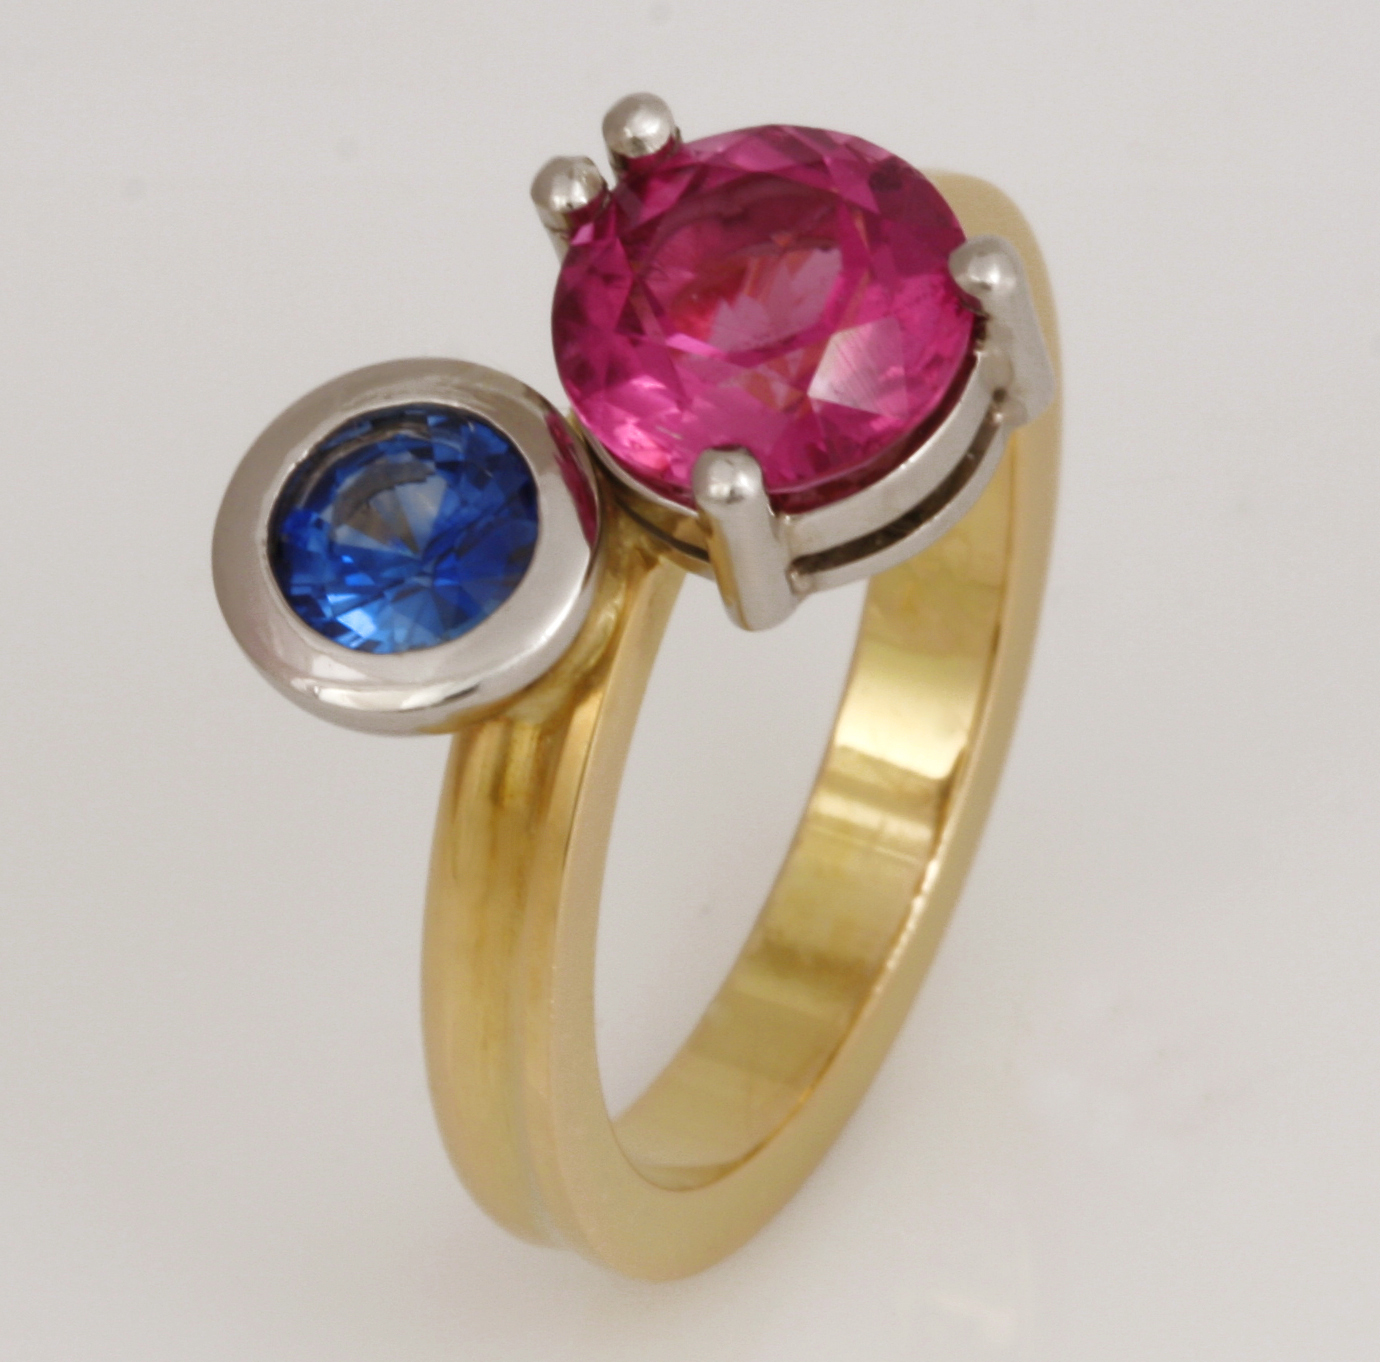 "R076 Handmade by Robert. 18ct yellow gold and palladium Rubelite and Sapphire ring. Size ""M 3/4"". $2730"